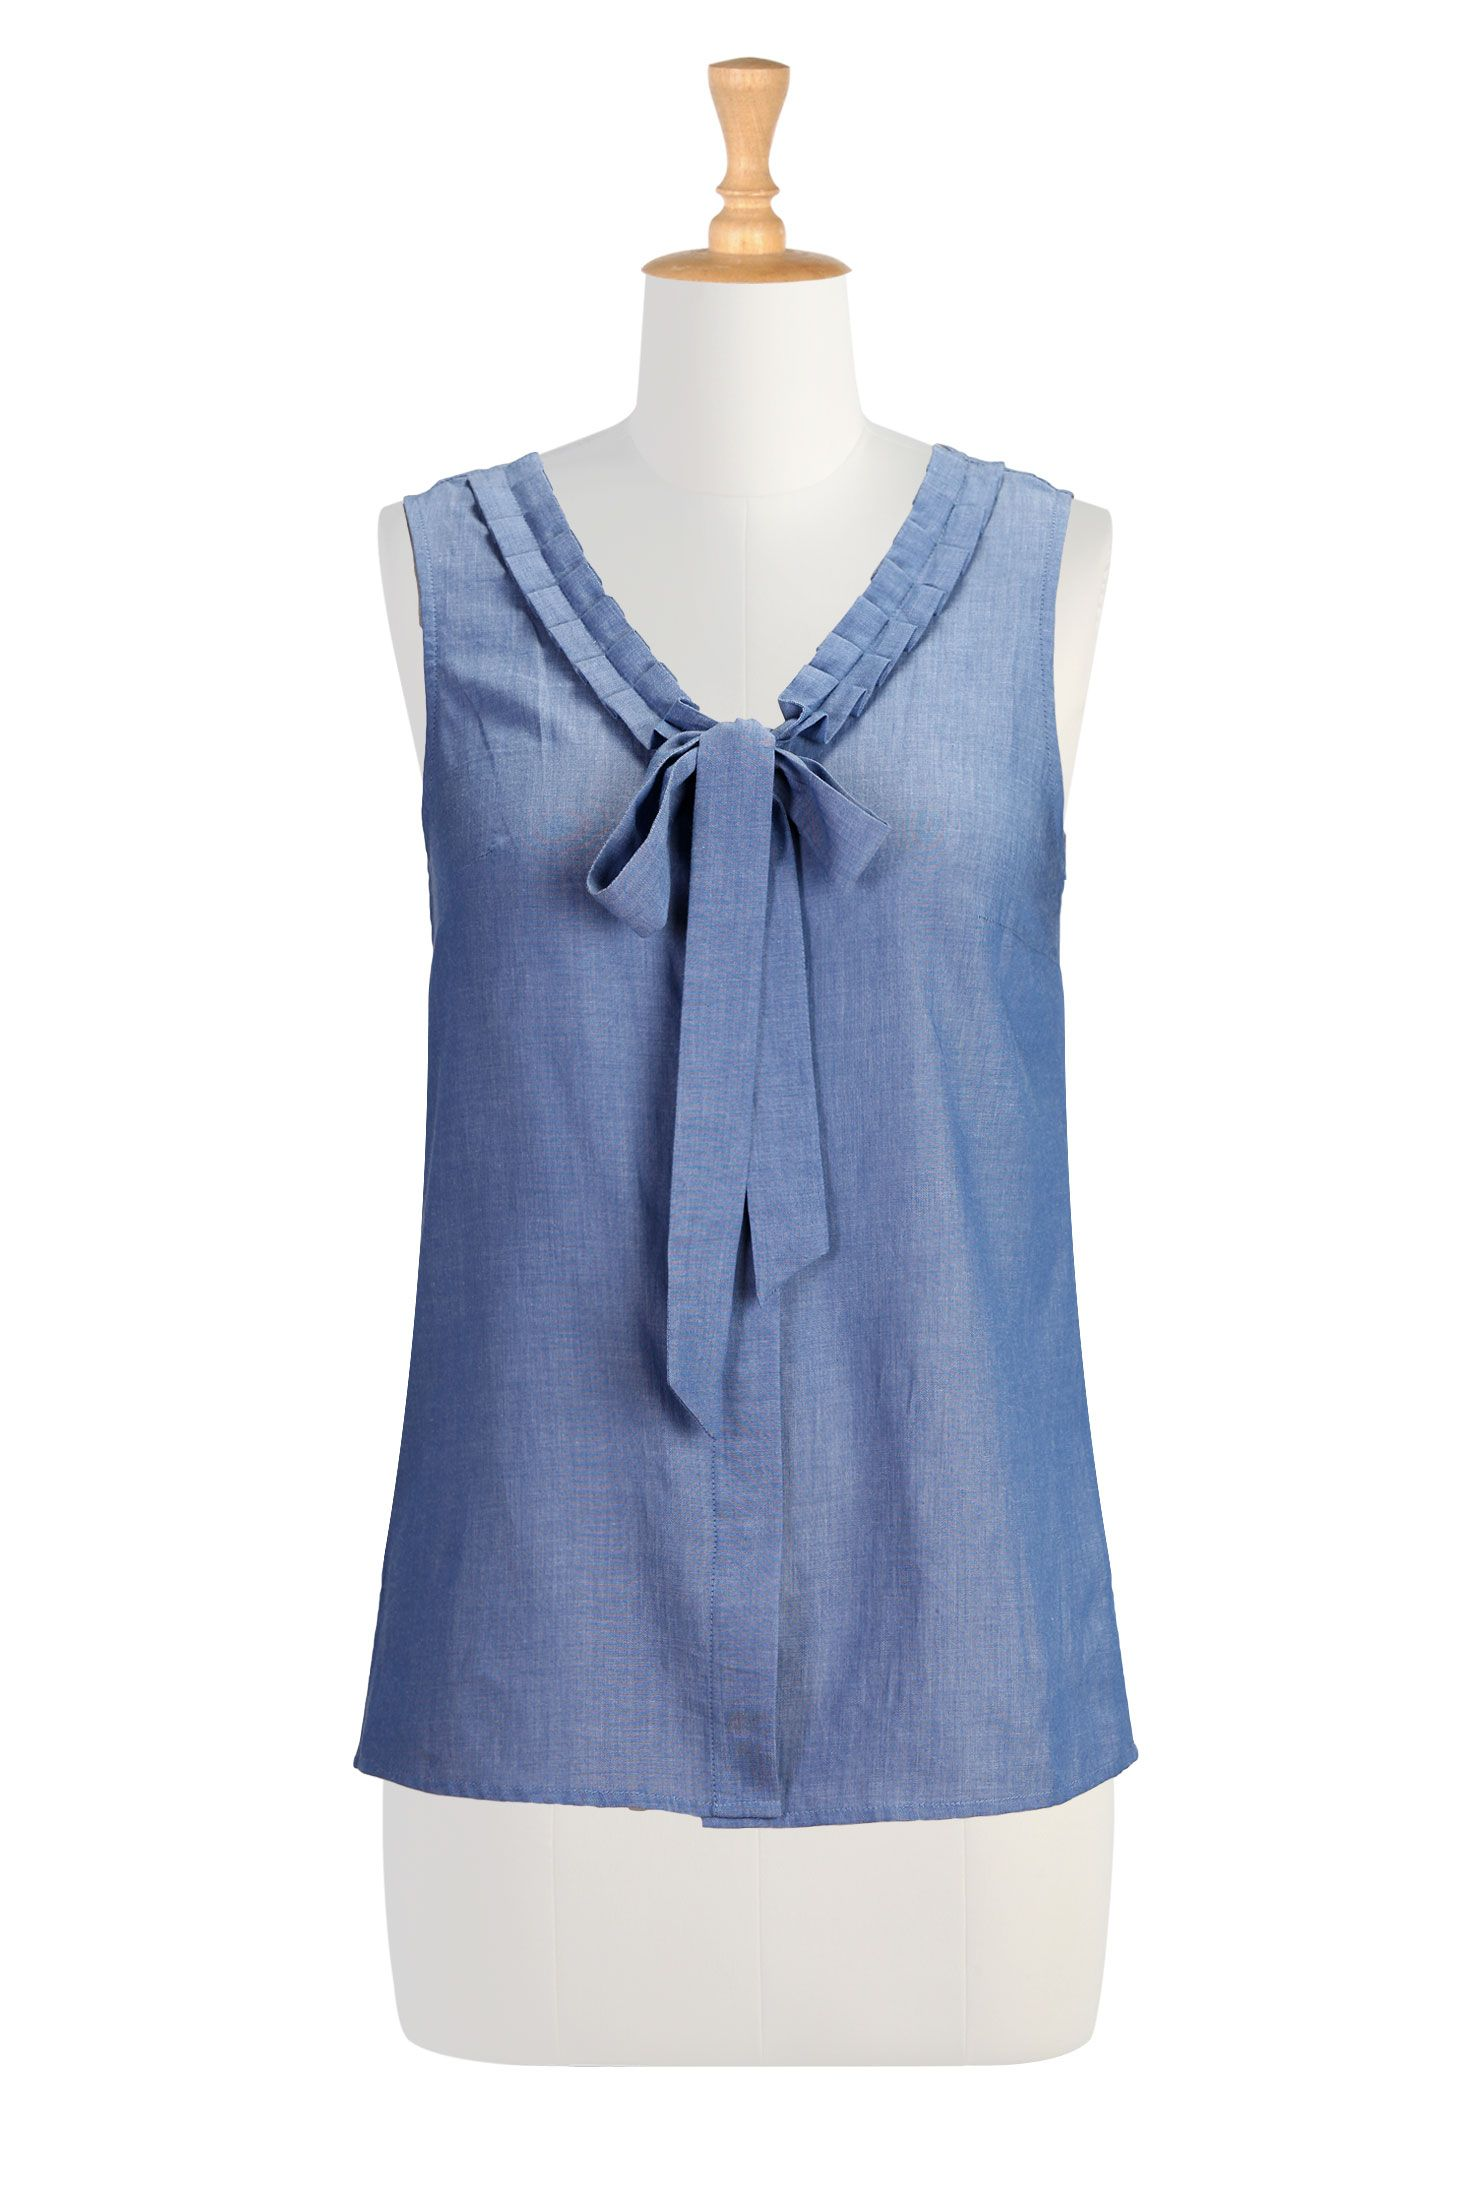 Chambray voile blouses light cotton plus size shirts for Plus size chambray shirt